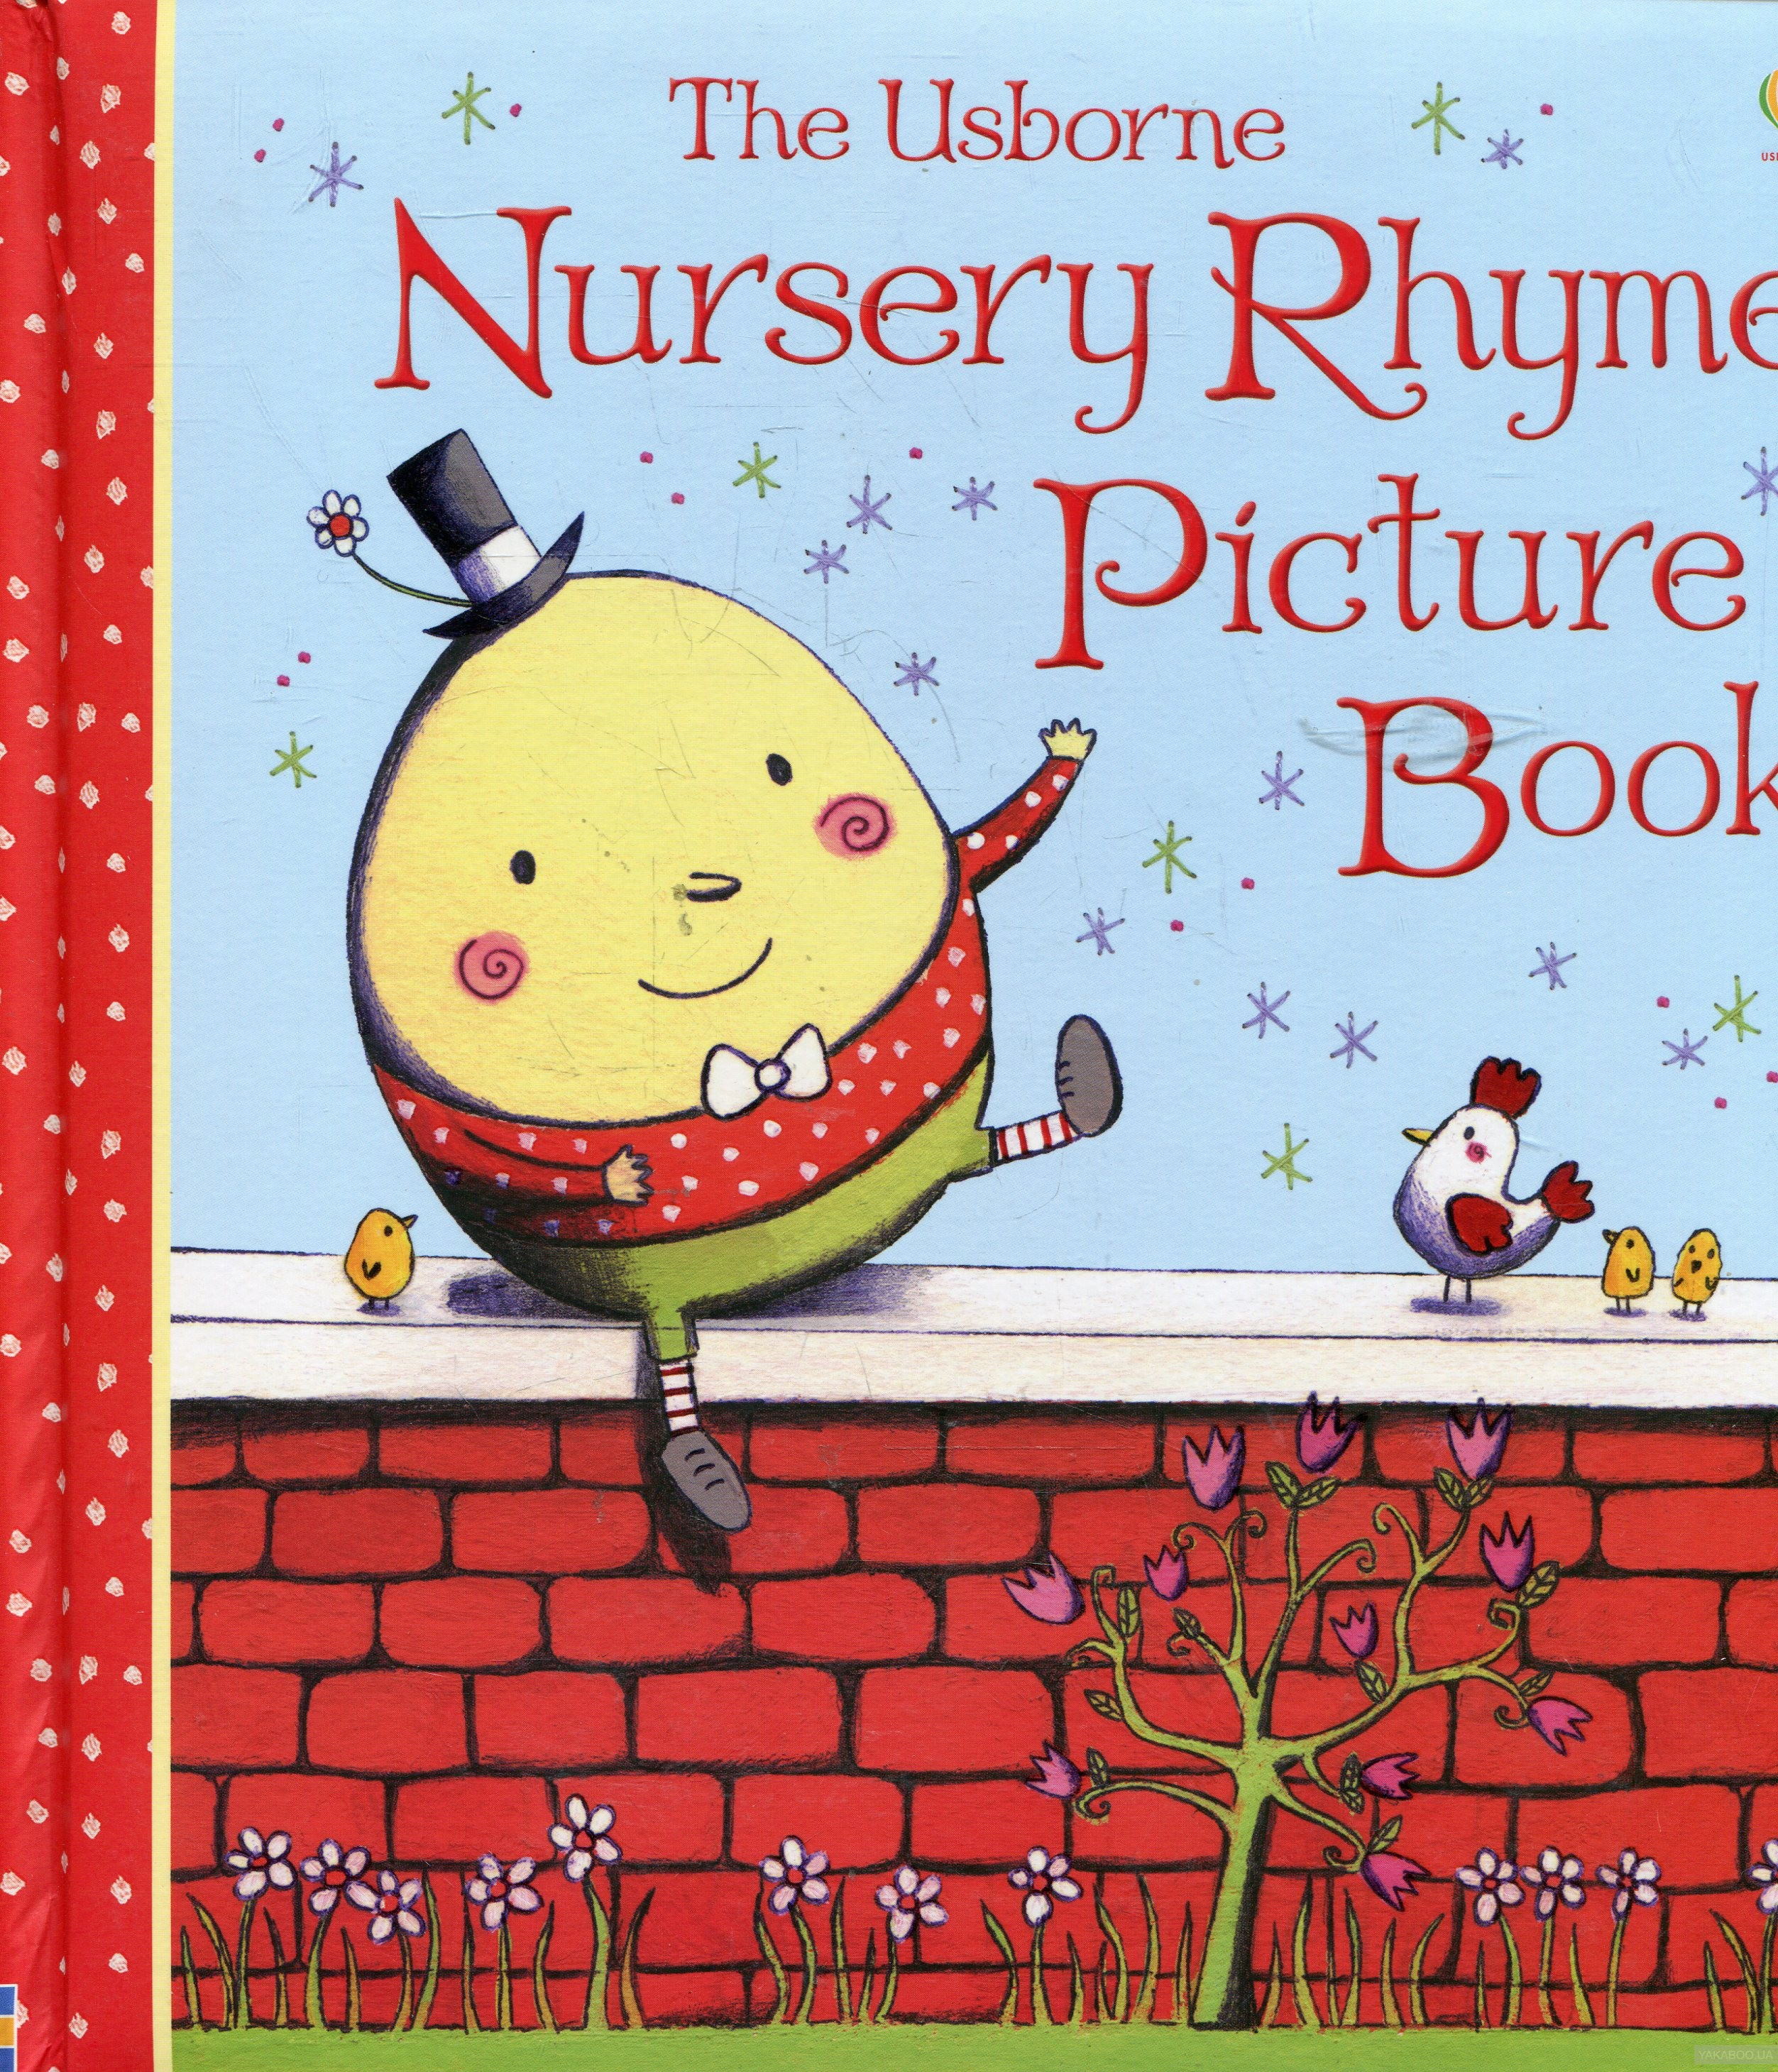 Nursery Rhyme Picture Book фото